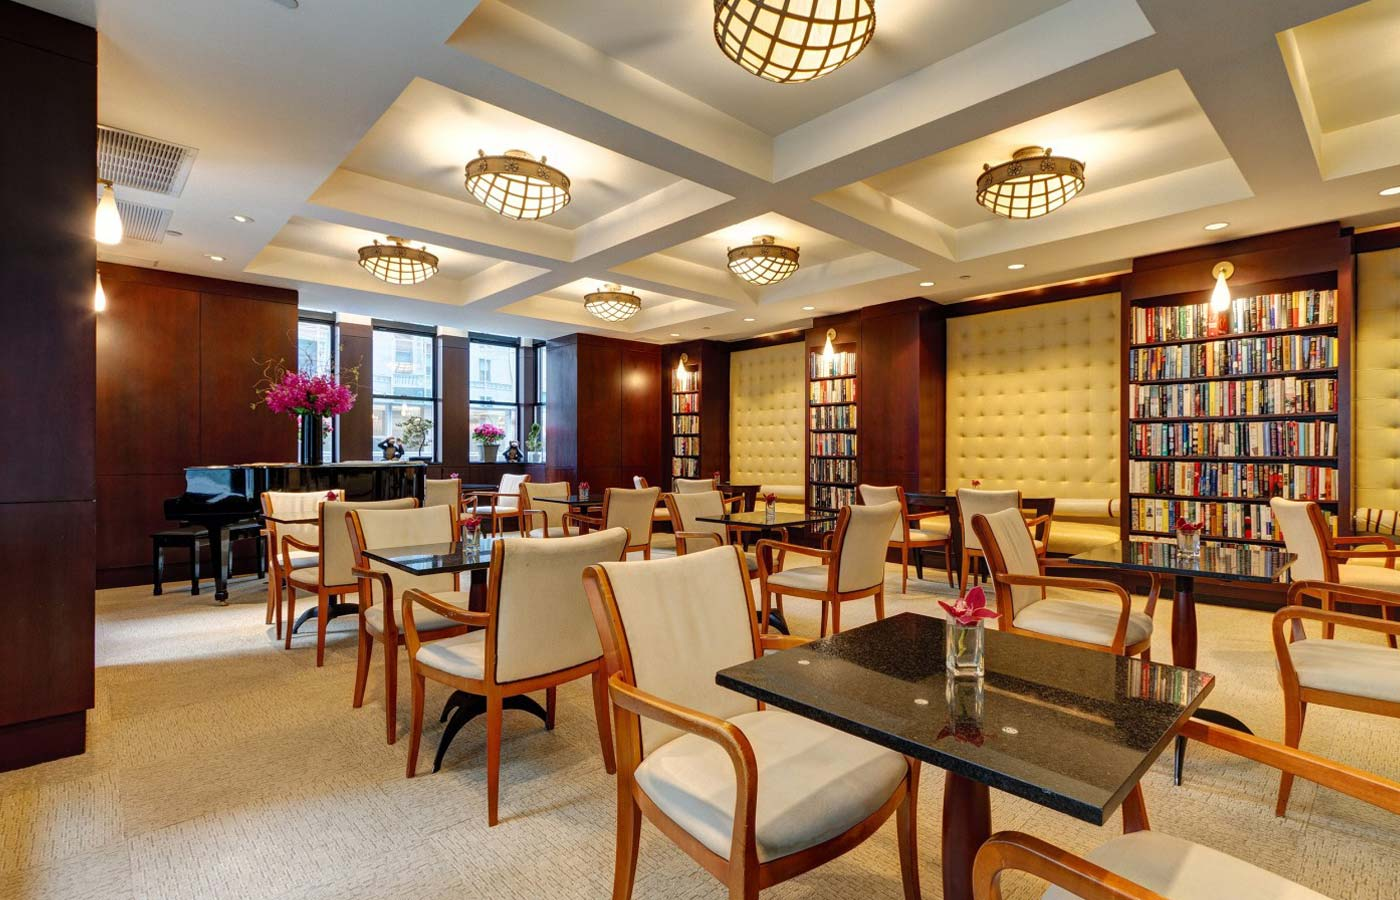 hoteles literarios library hotel New York-ruta-literaria-mientrasleo